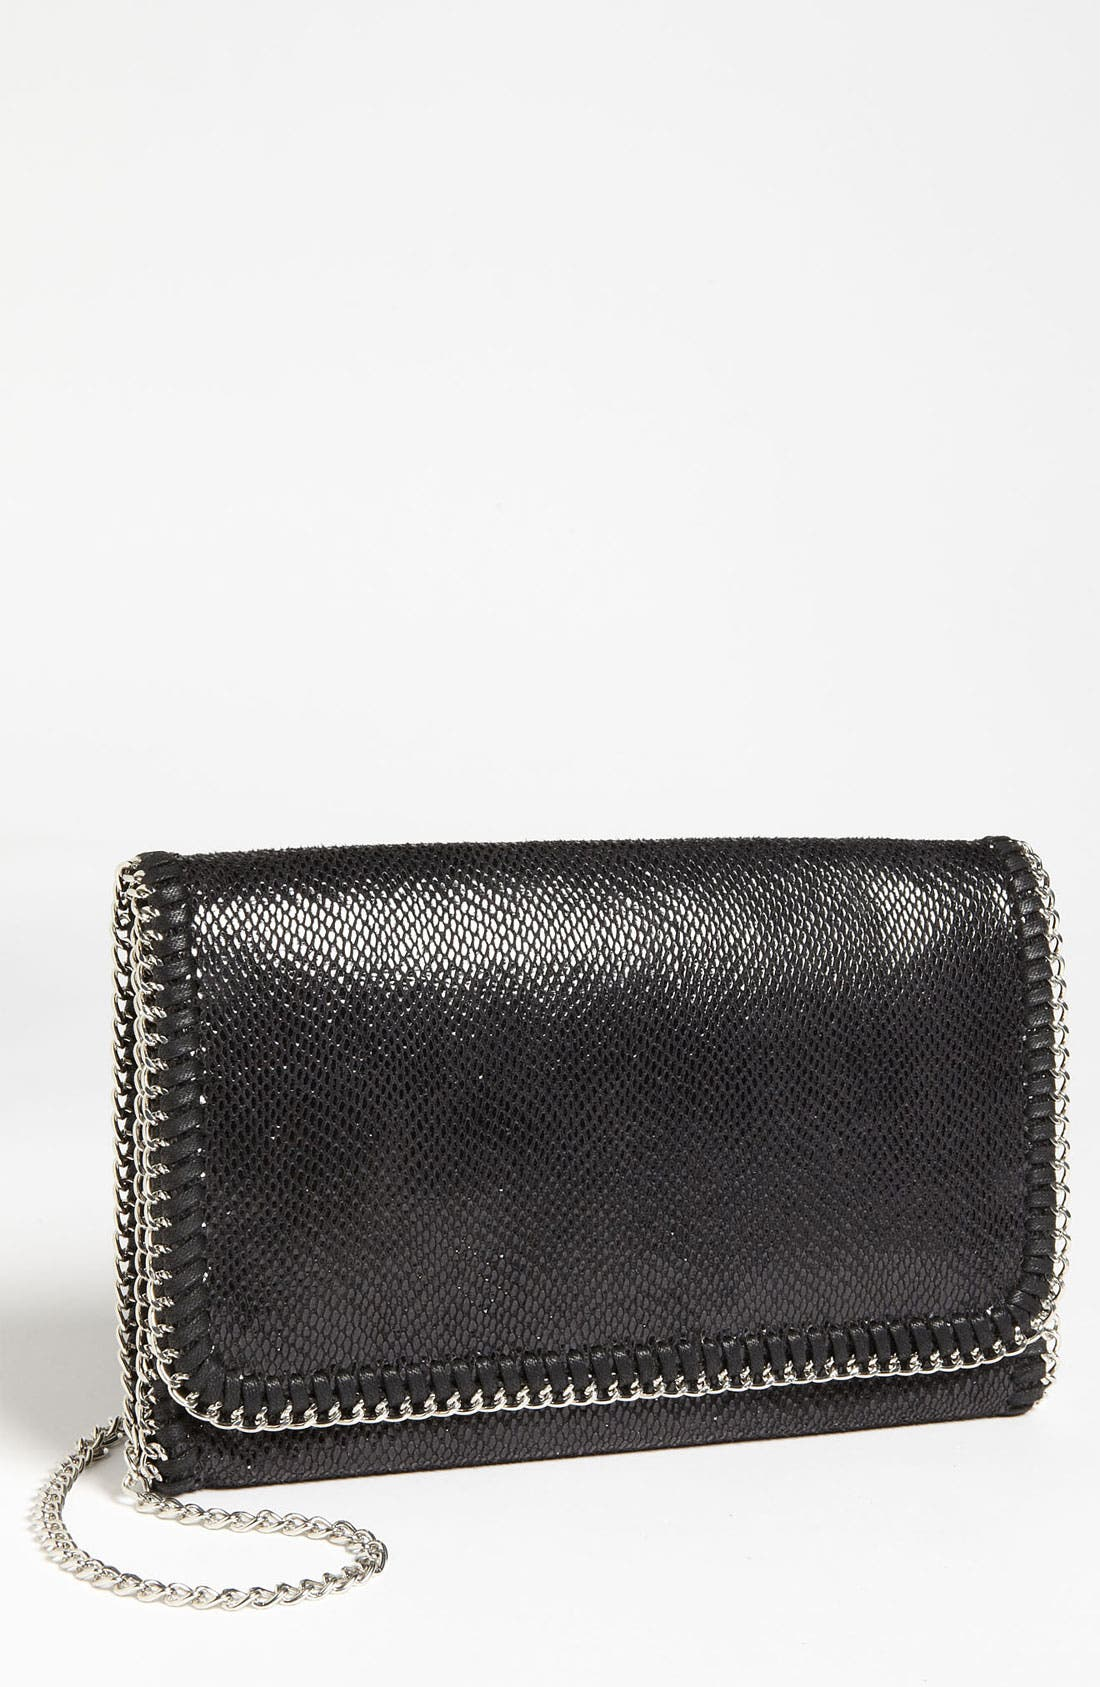 Main Image - Tarnish 'Lizard Chain' Clutch